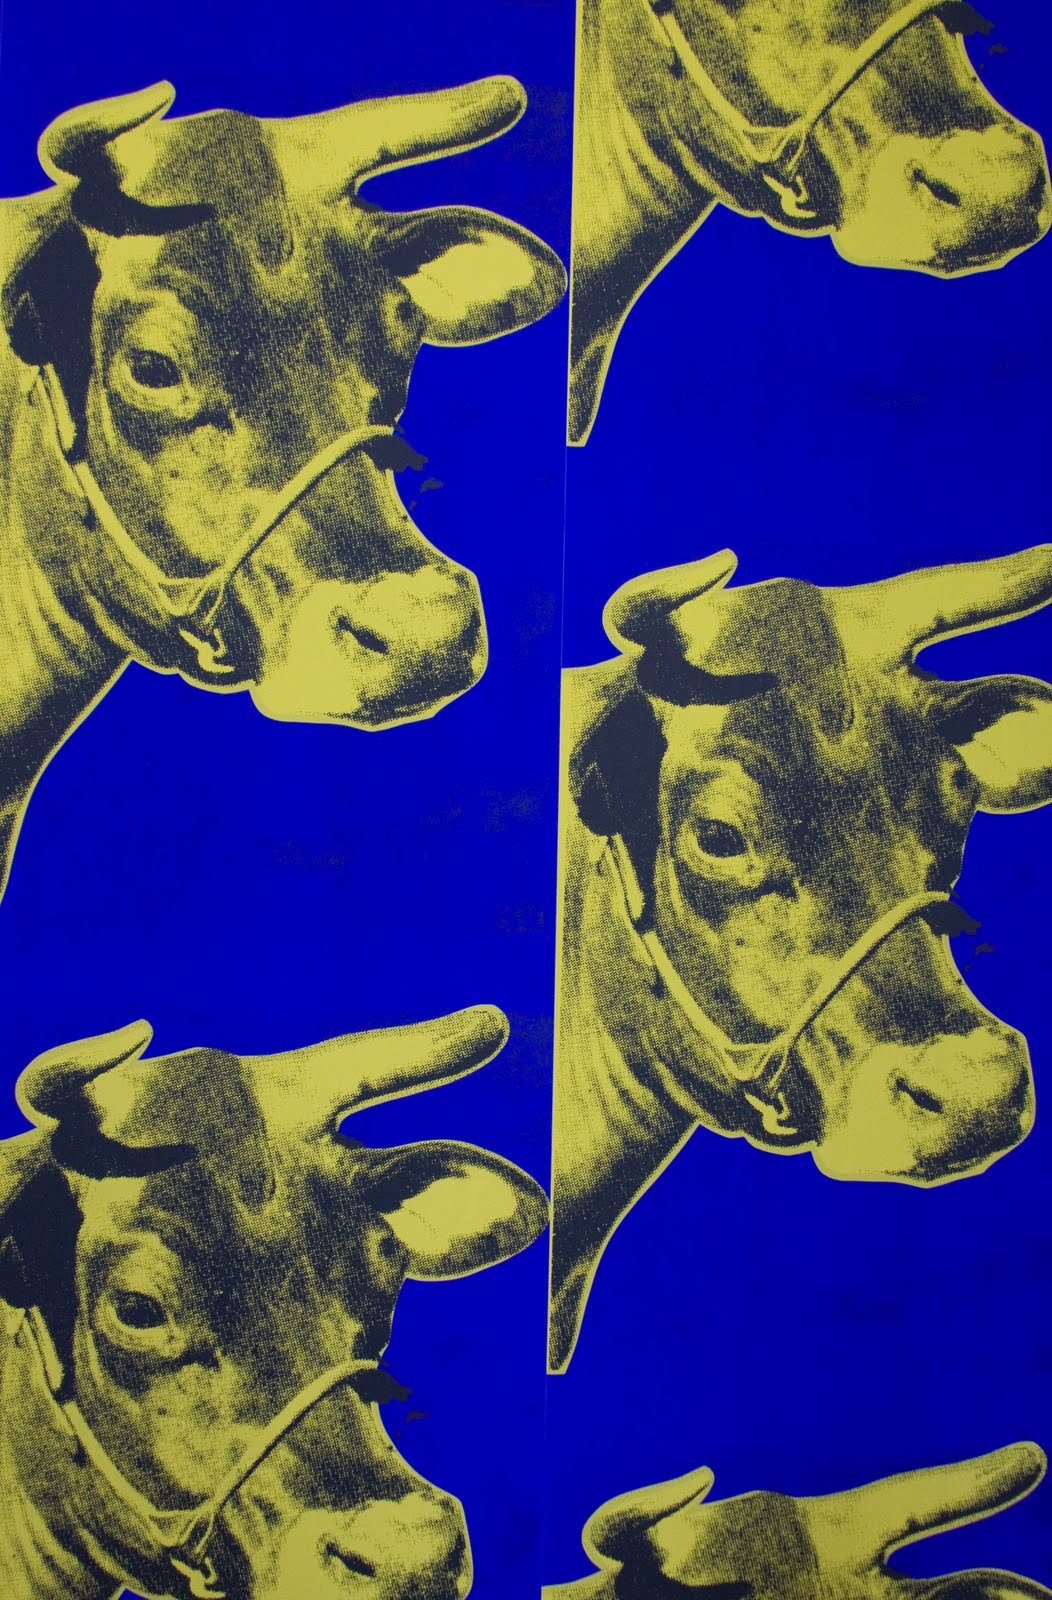 Andy Warhol Cow Wallpaper Andy warhol   cow wallpaper 1052x1600